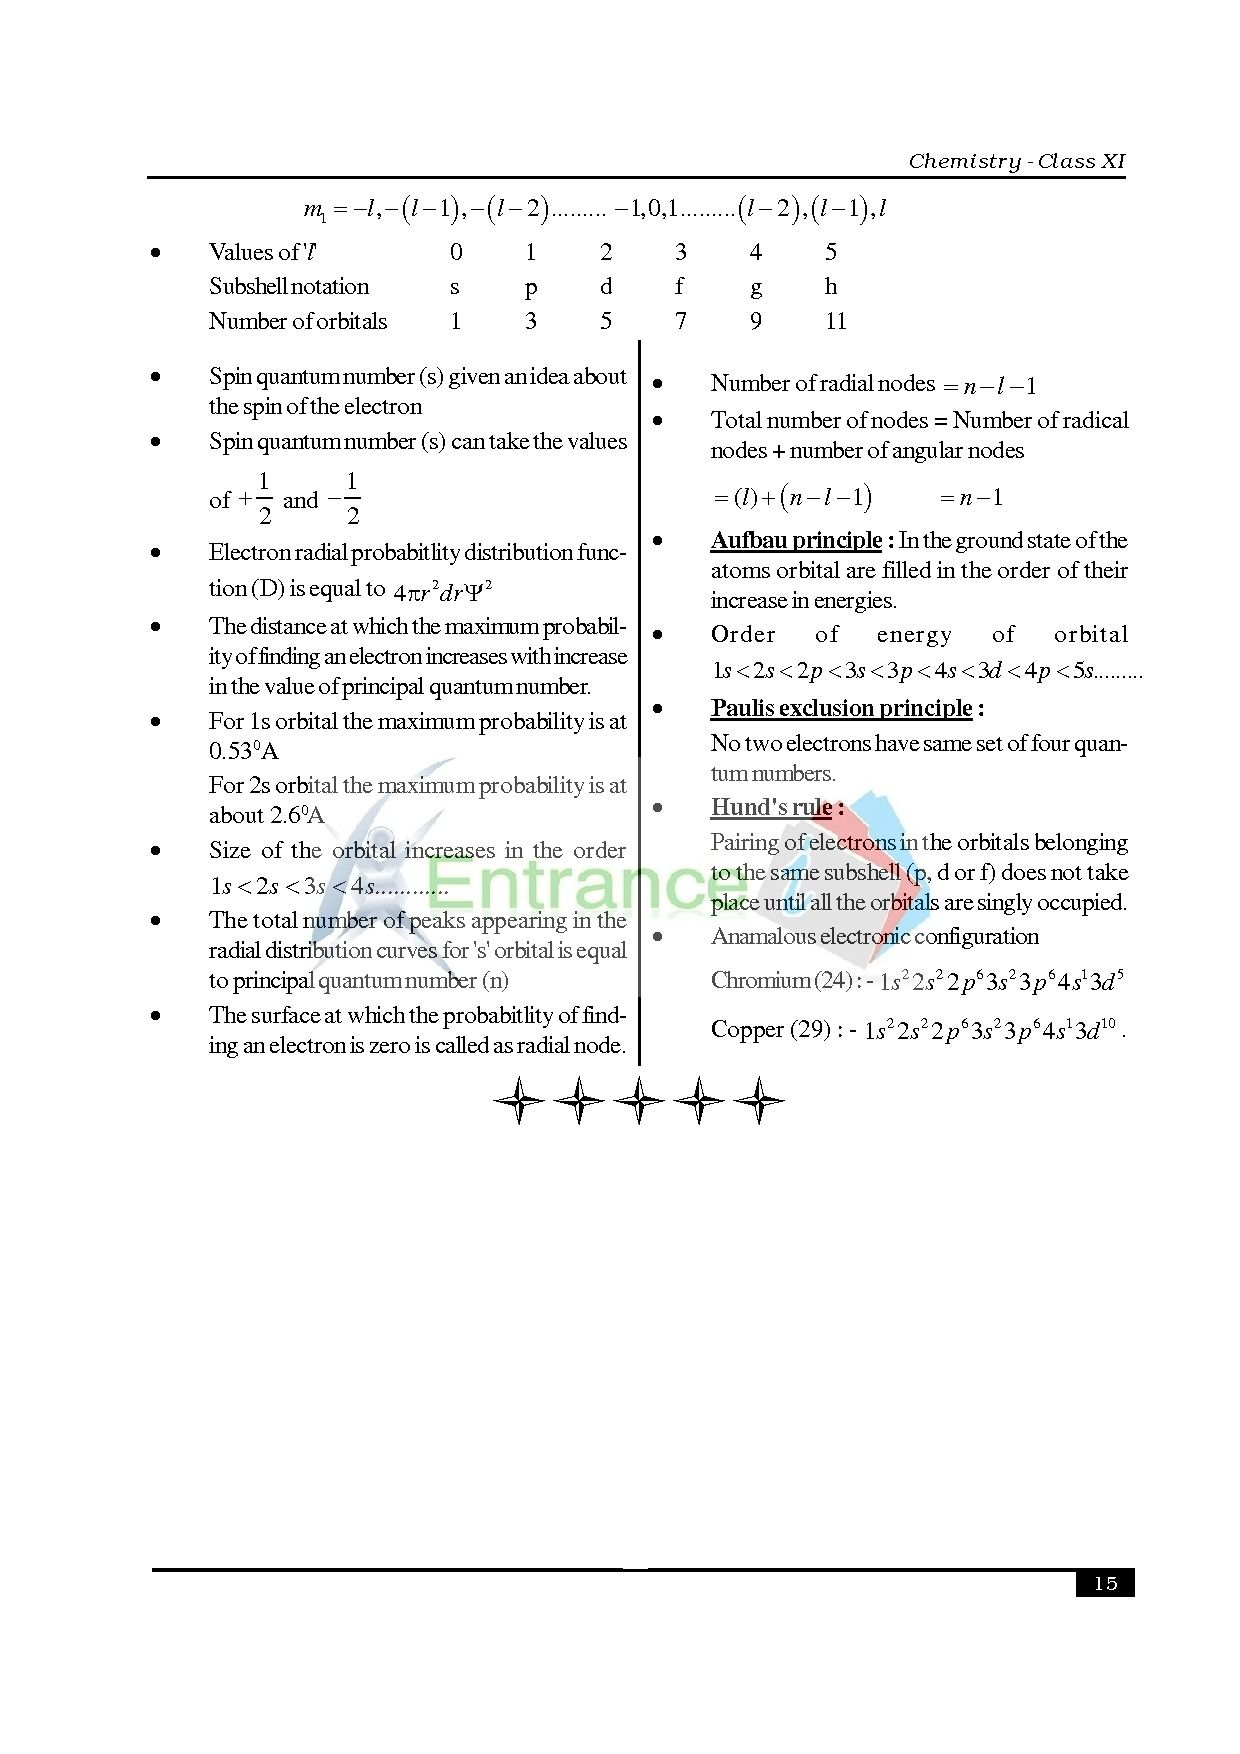 Chemistry Formula For Class 11 Chapter Atomic Structure Atomic Structure Formula Pdf In 2020 Atomic Structure Chemistry Chemistry Basics